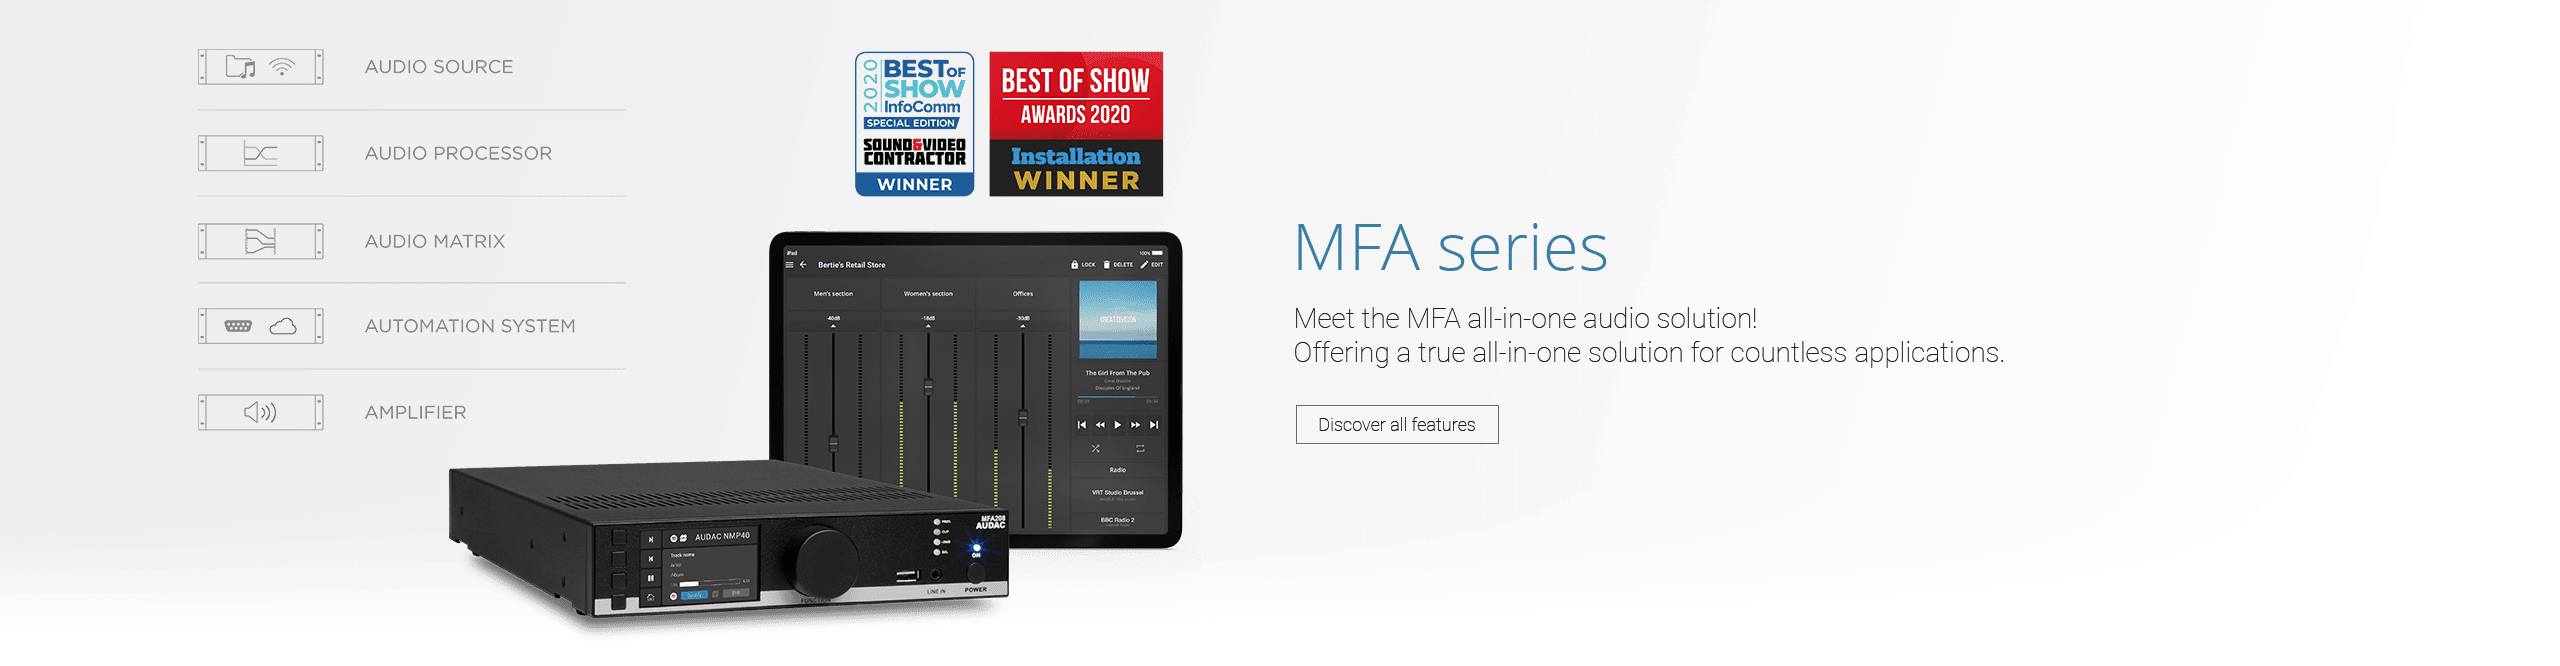 AUDAC - All-in-one audio solution - MFA series